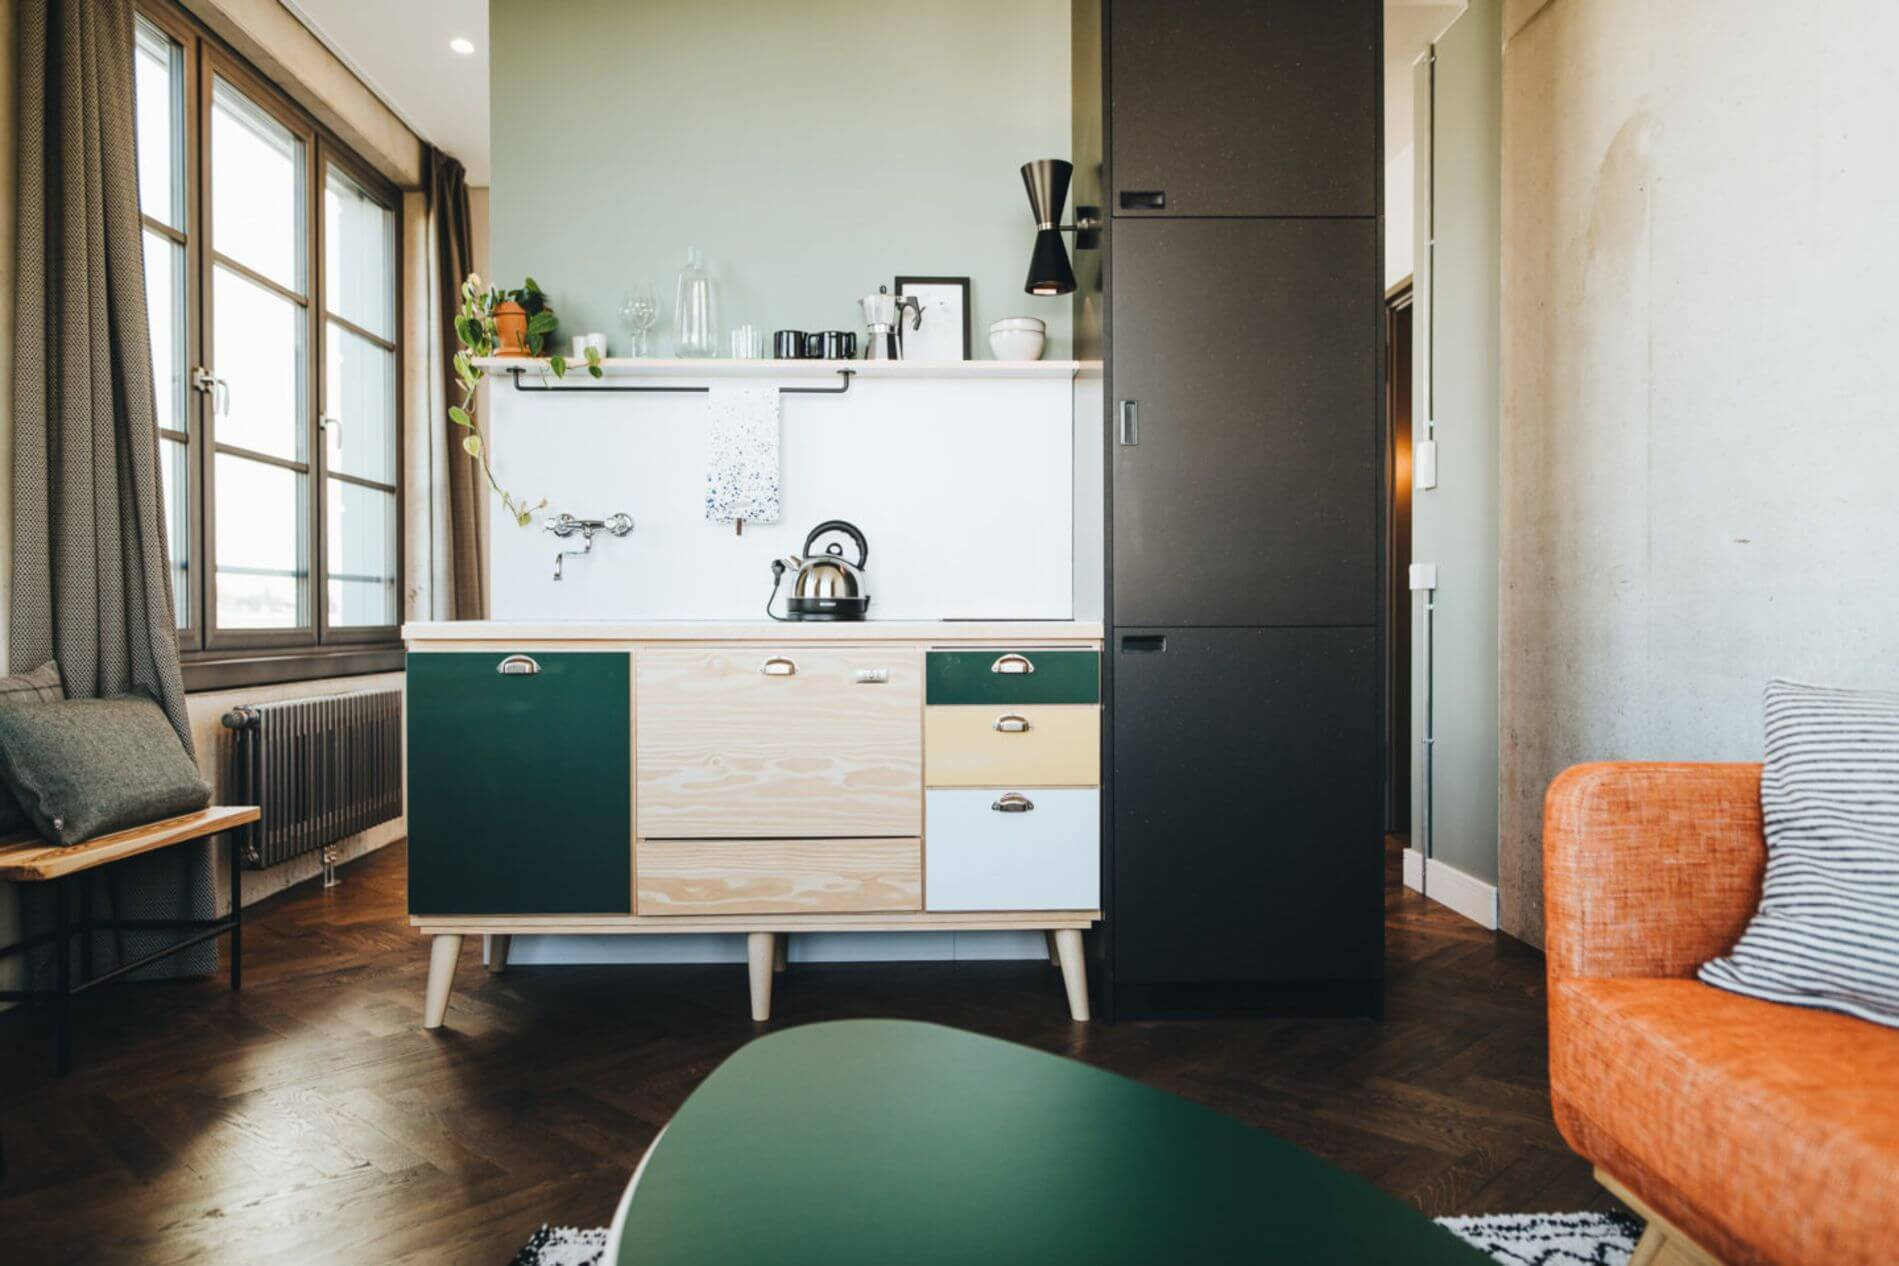 Fully equipped serviced apartment in central location in Berlin